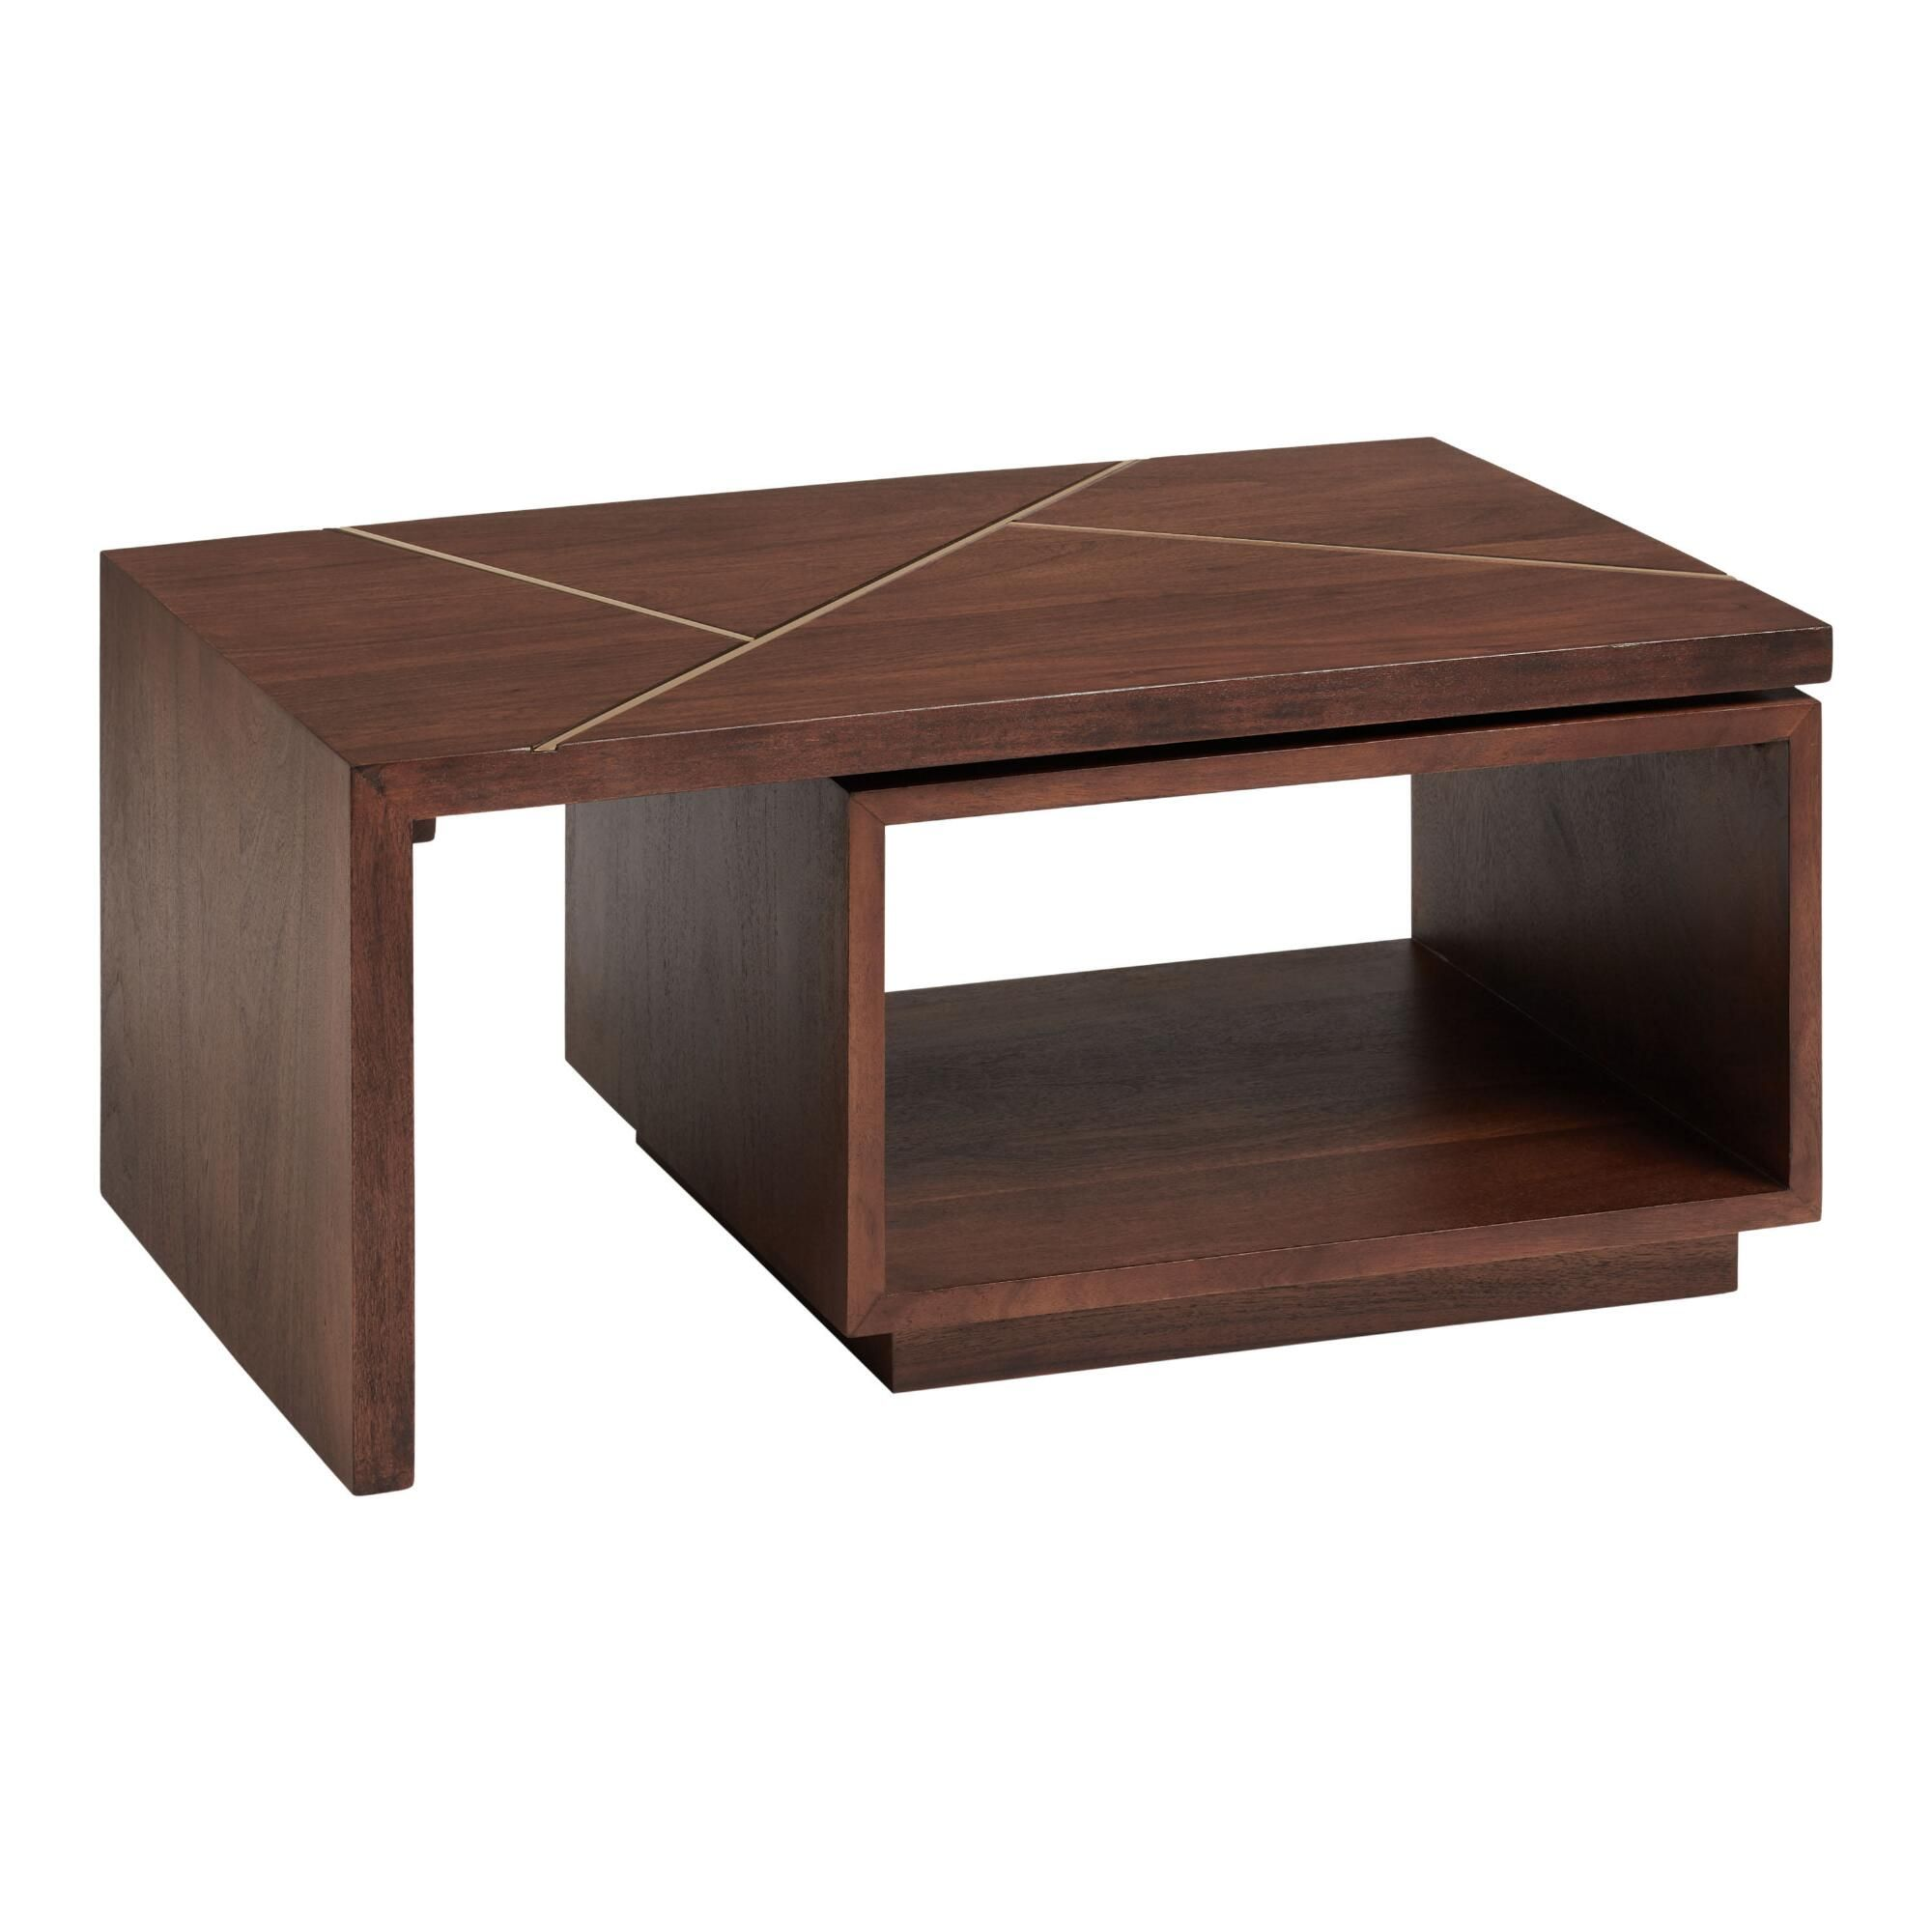 Walnut And Gold Inlay Mason Swivel Coffee Table Brown Wood By World Market In 2021 Coffee Table Coffee Table Small Space Furniture For Small Spaces [ 2000 x 2000 Pixel ]